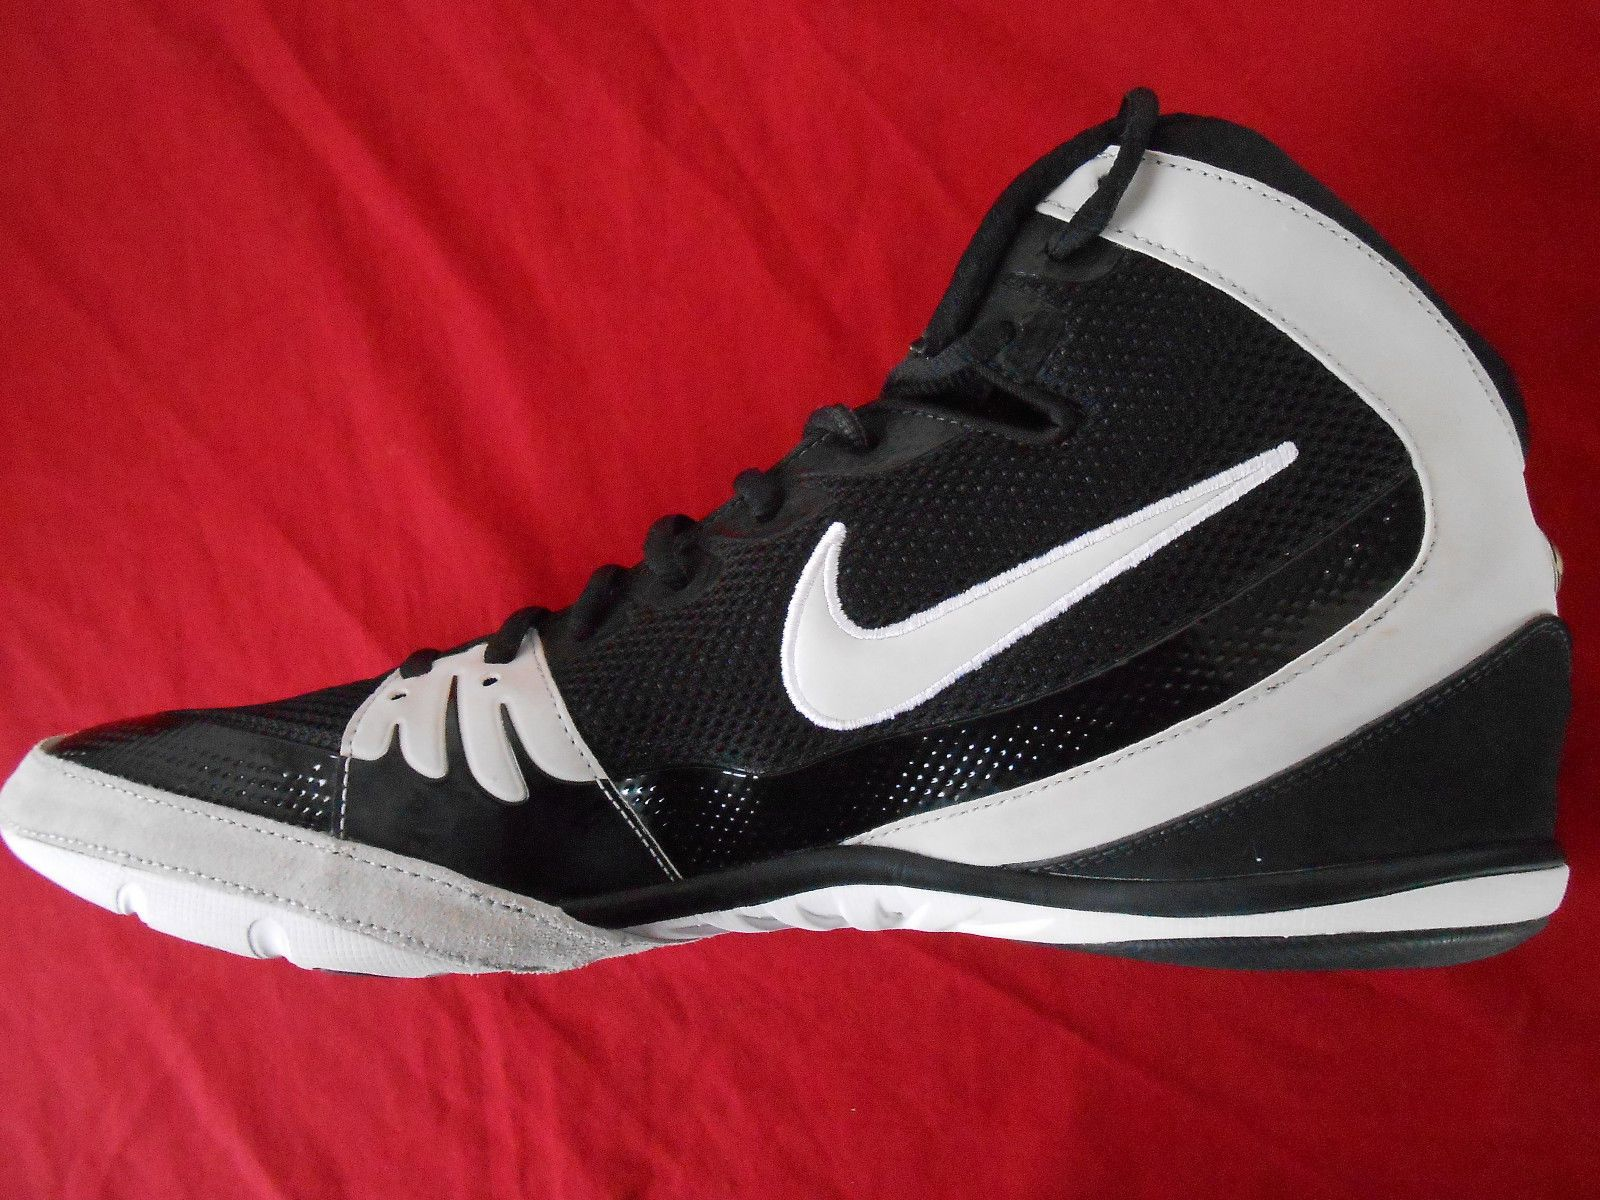 buy popular 6bf15 1b0e9 RARE Nike Freek Wrestling Shoes Size 12 5 Excellent   eBay